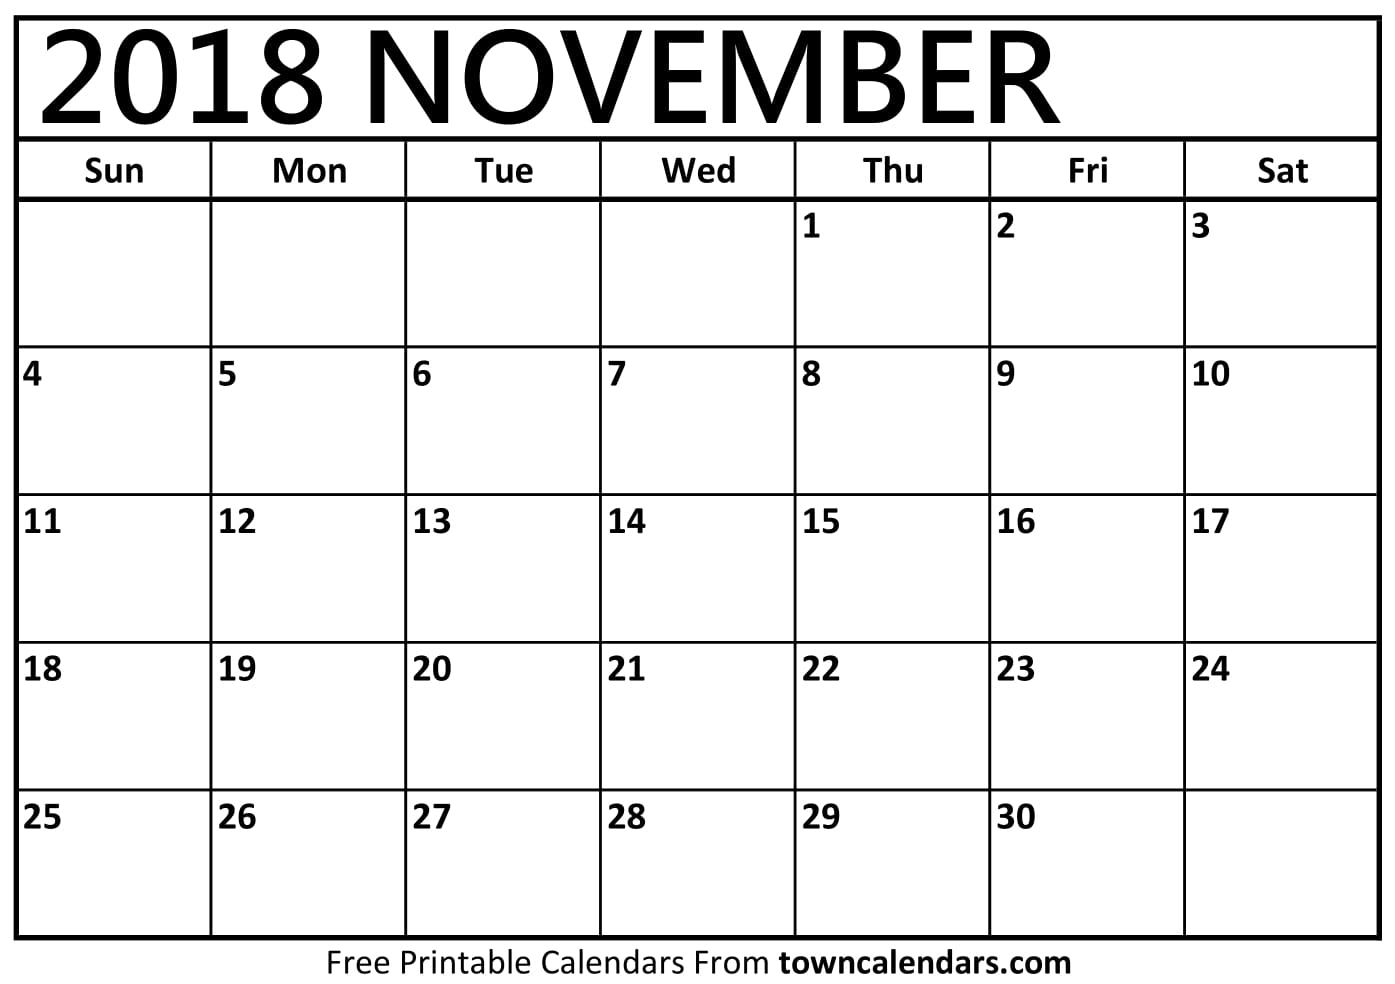 Free Printable Blank Cute Editable PDF November 2018 Calendar with Holidays Templates Word Excel Google Docs Download